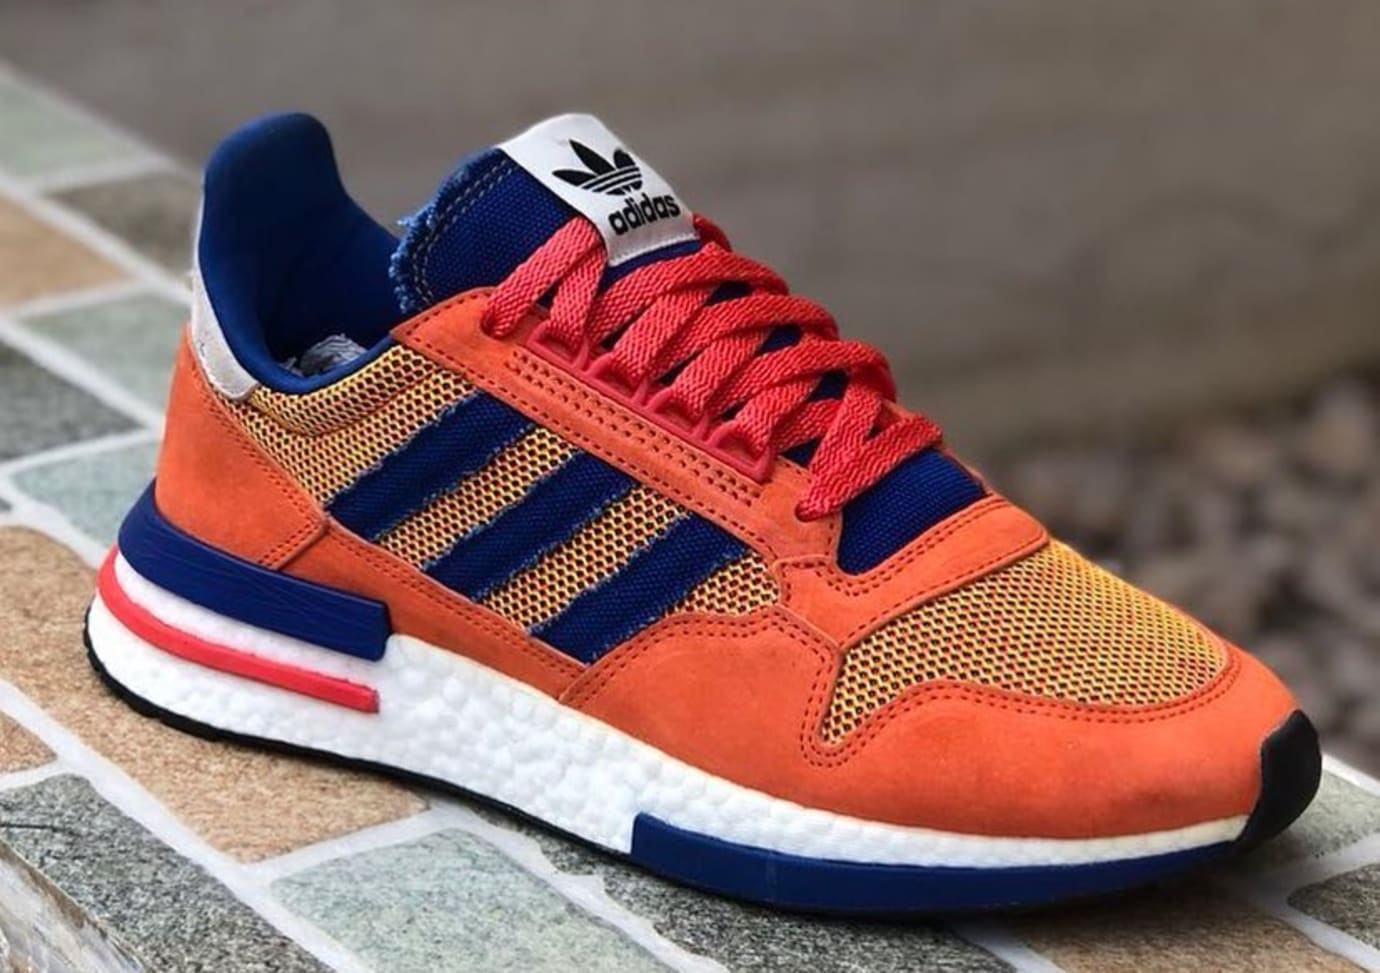 203ece4ad Image via  dreamcollector1 · Dragon Ball Z x Adidas ZX 500 RM  Goku